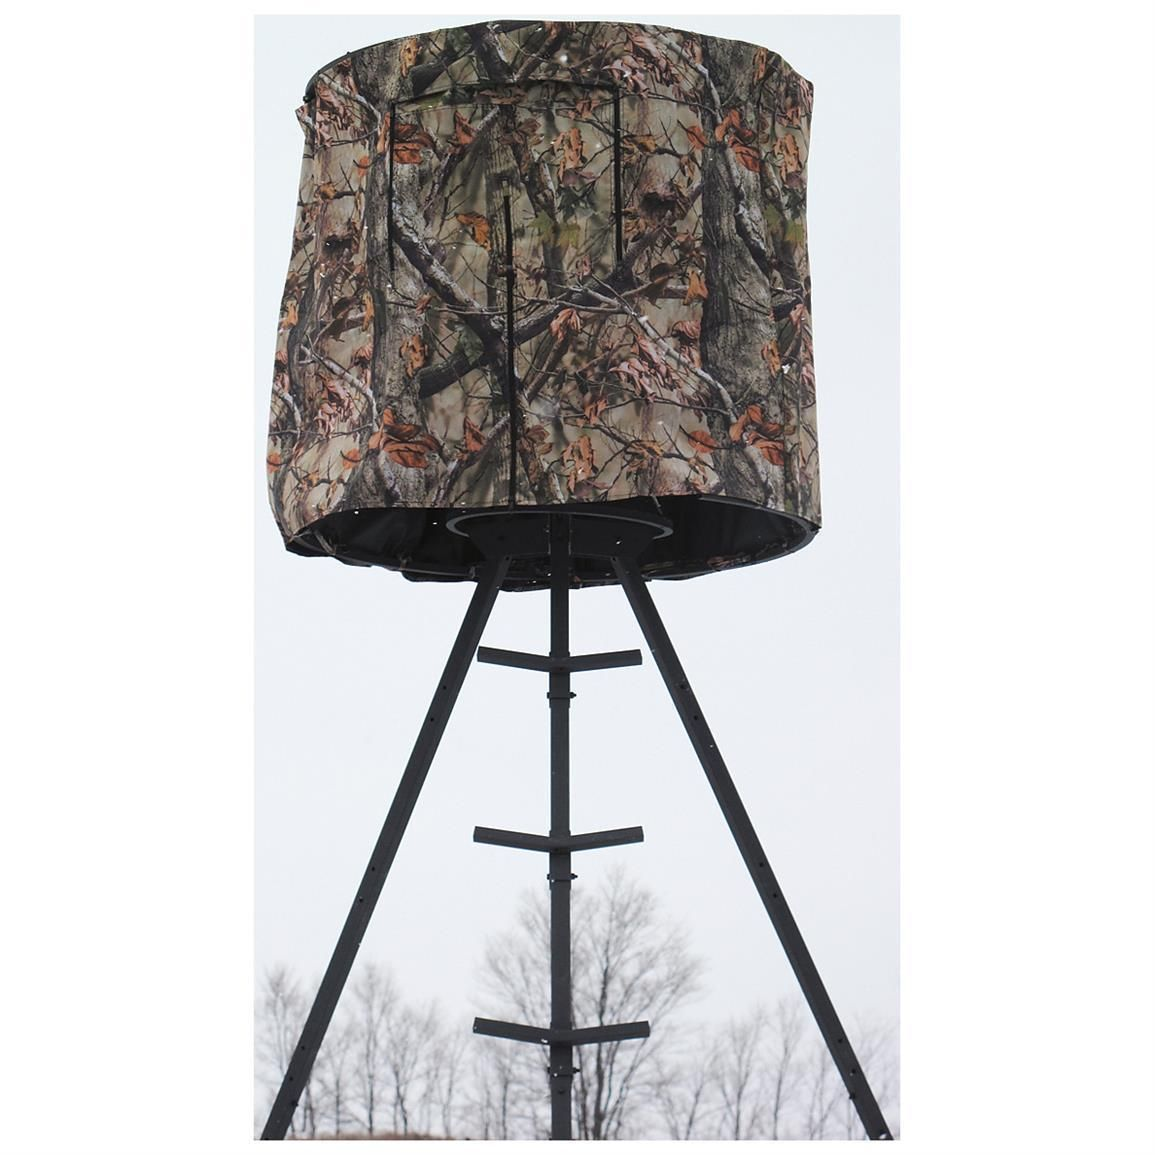 Tripod Hunting Blind Archery Concealment Treestand